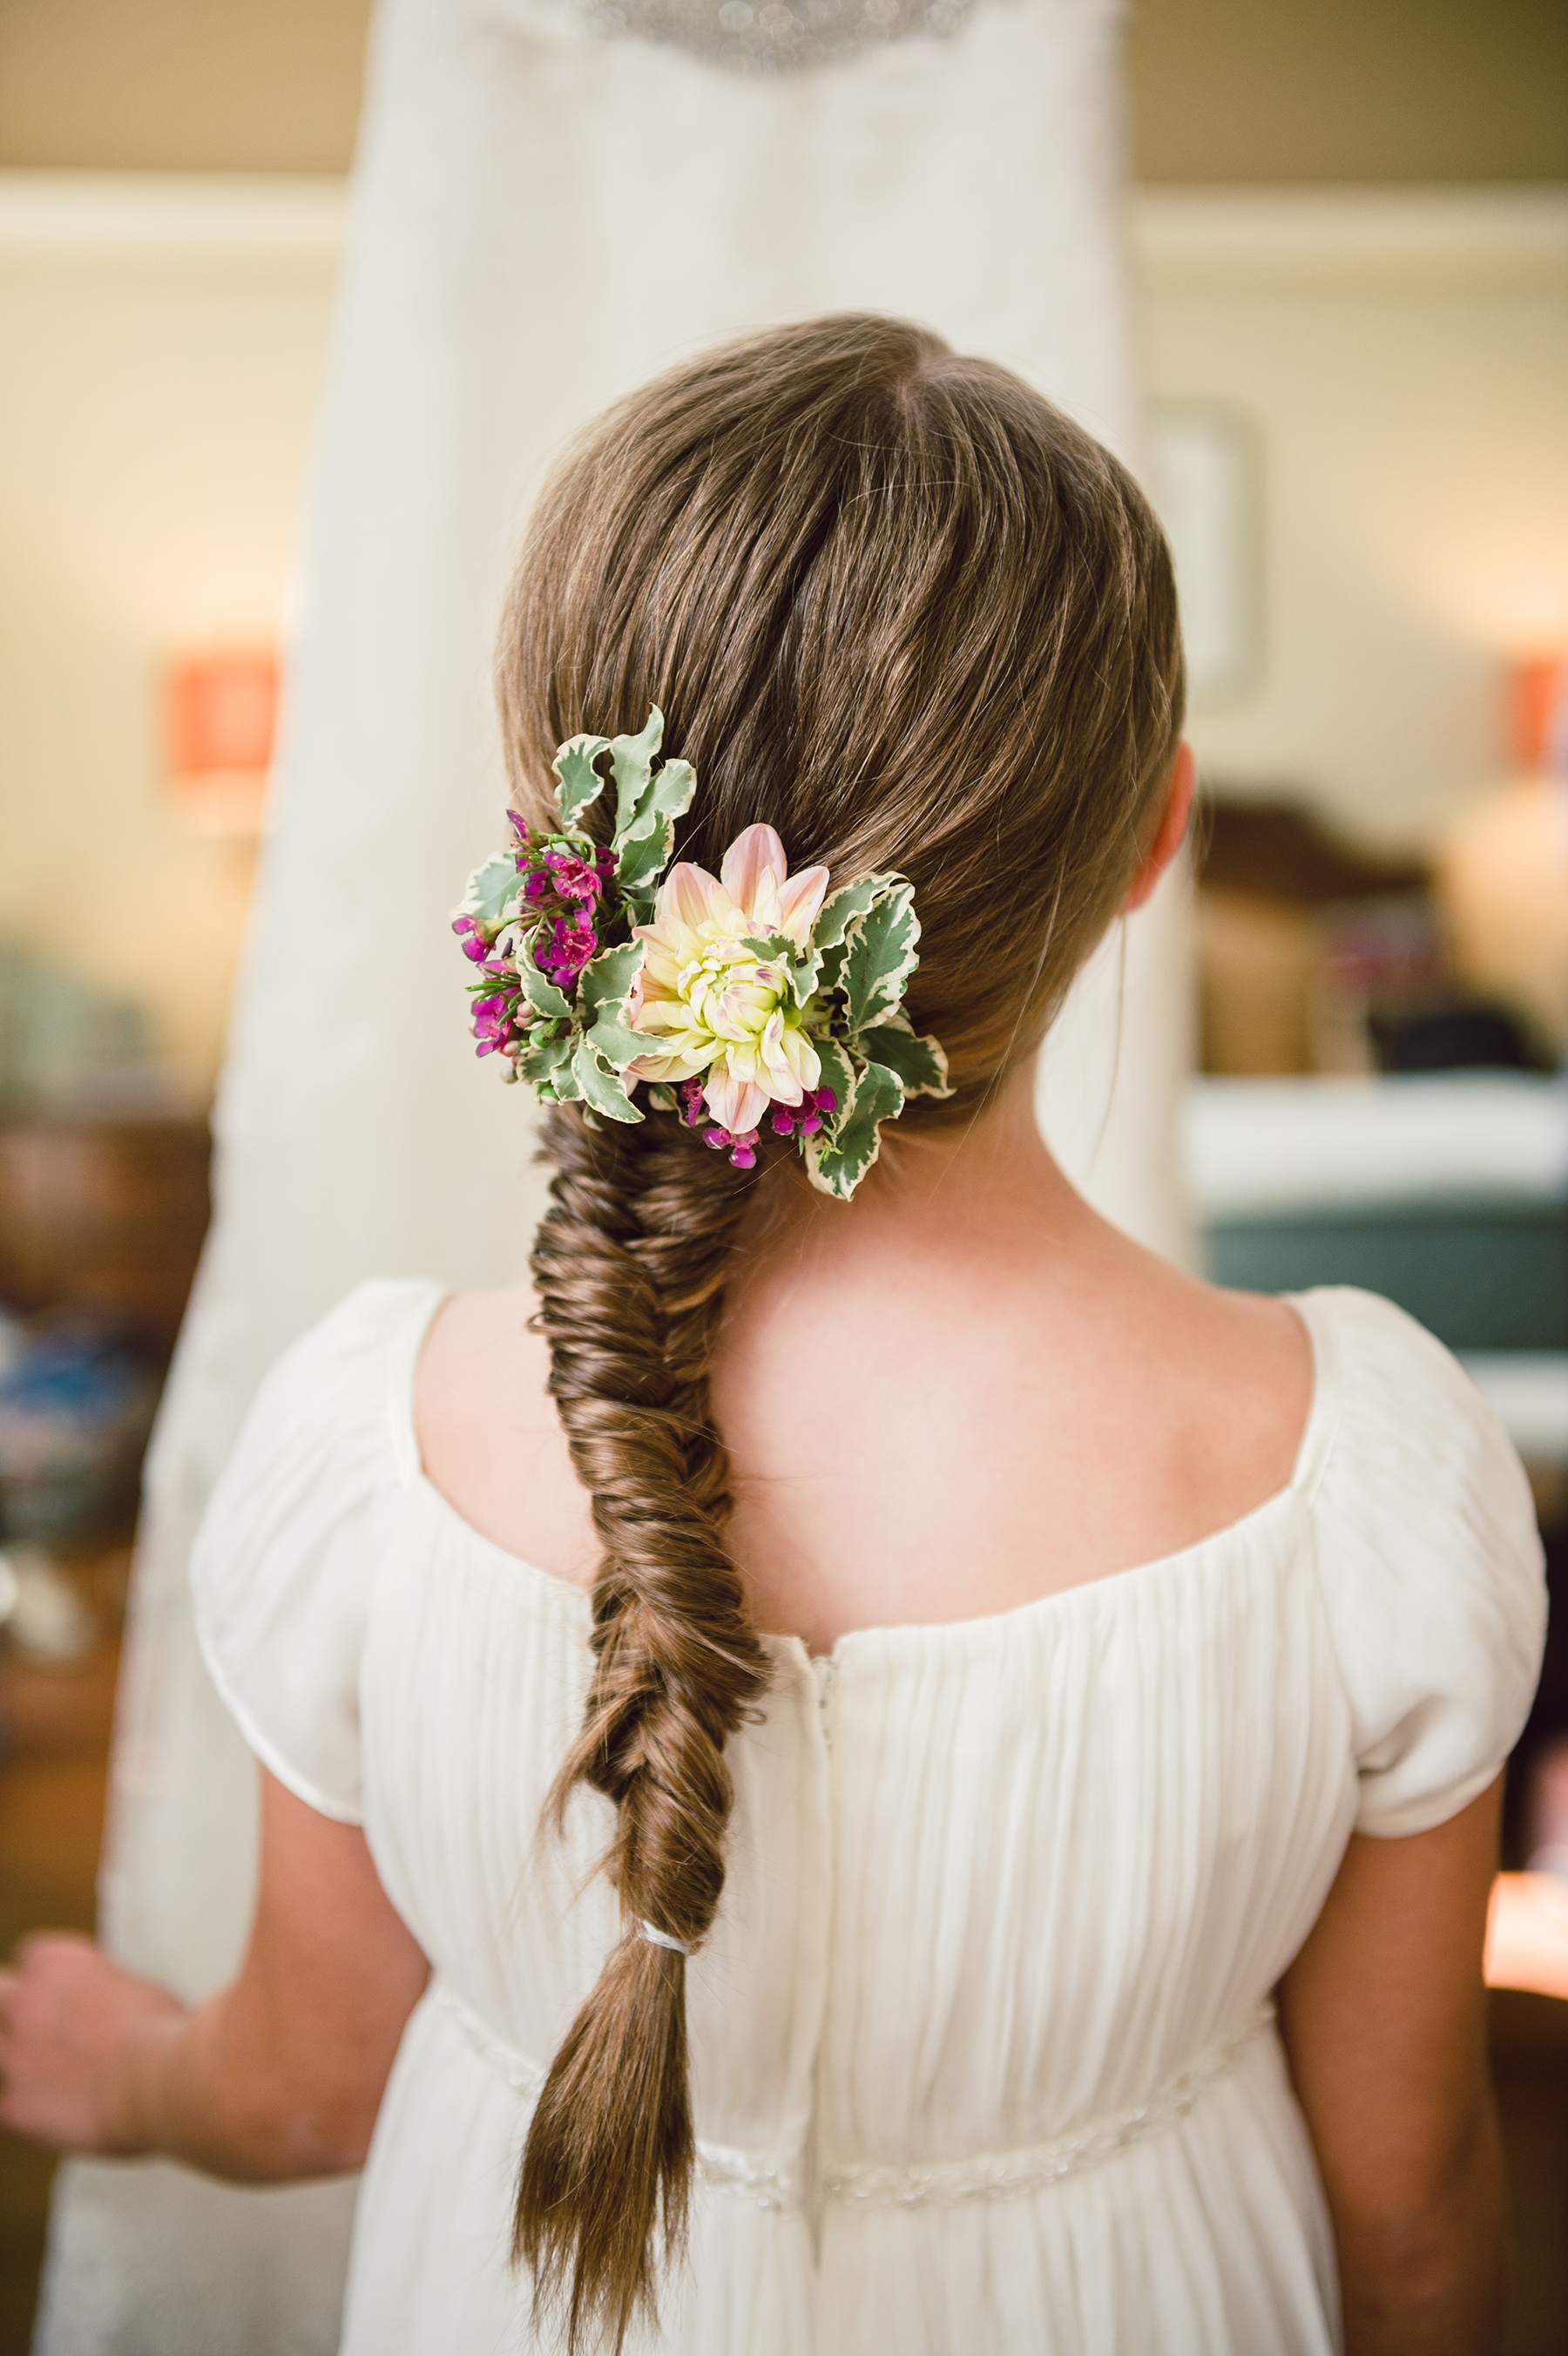 Flower Girl Hairstyle Fishtail Braid with Flower Piece